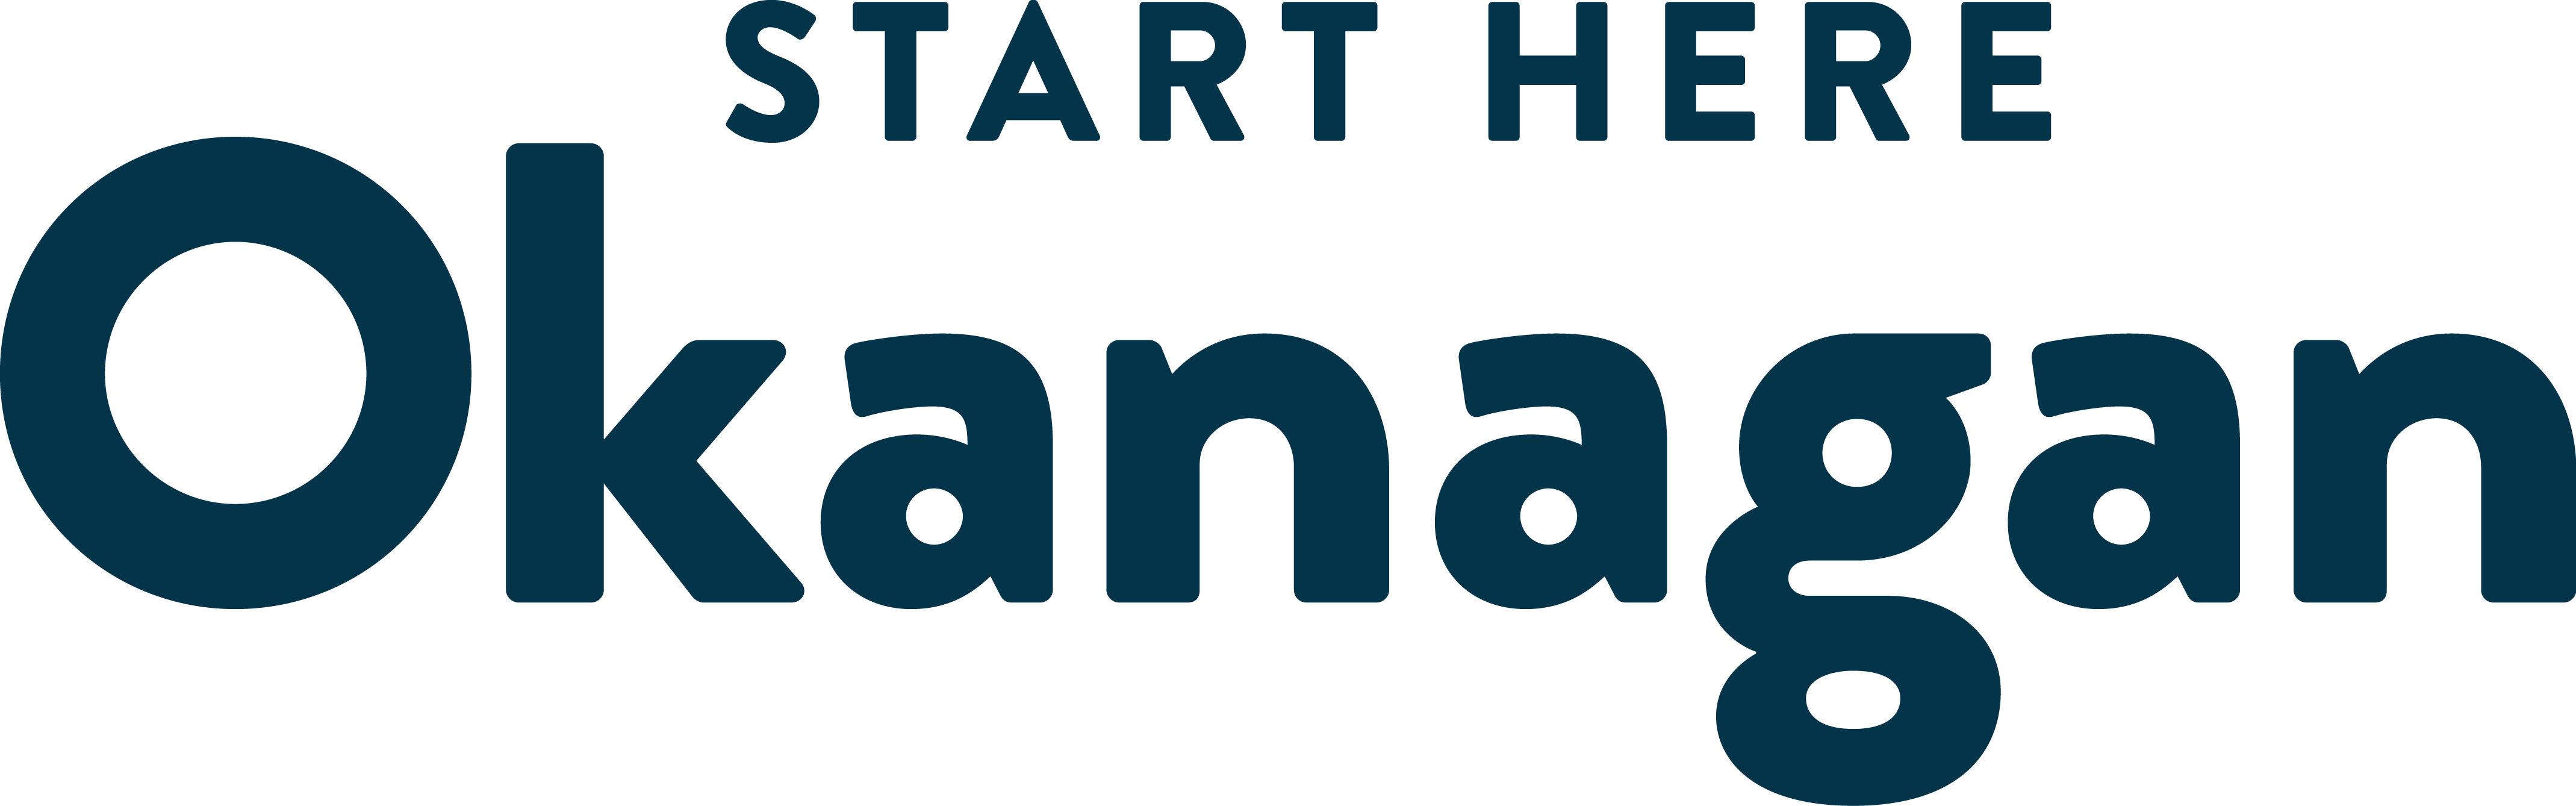 Start Here Okanagan Logo